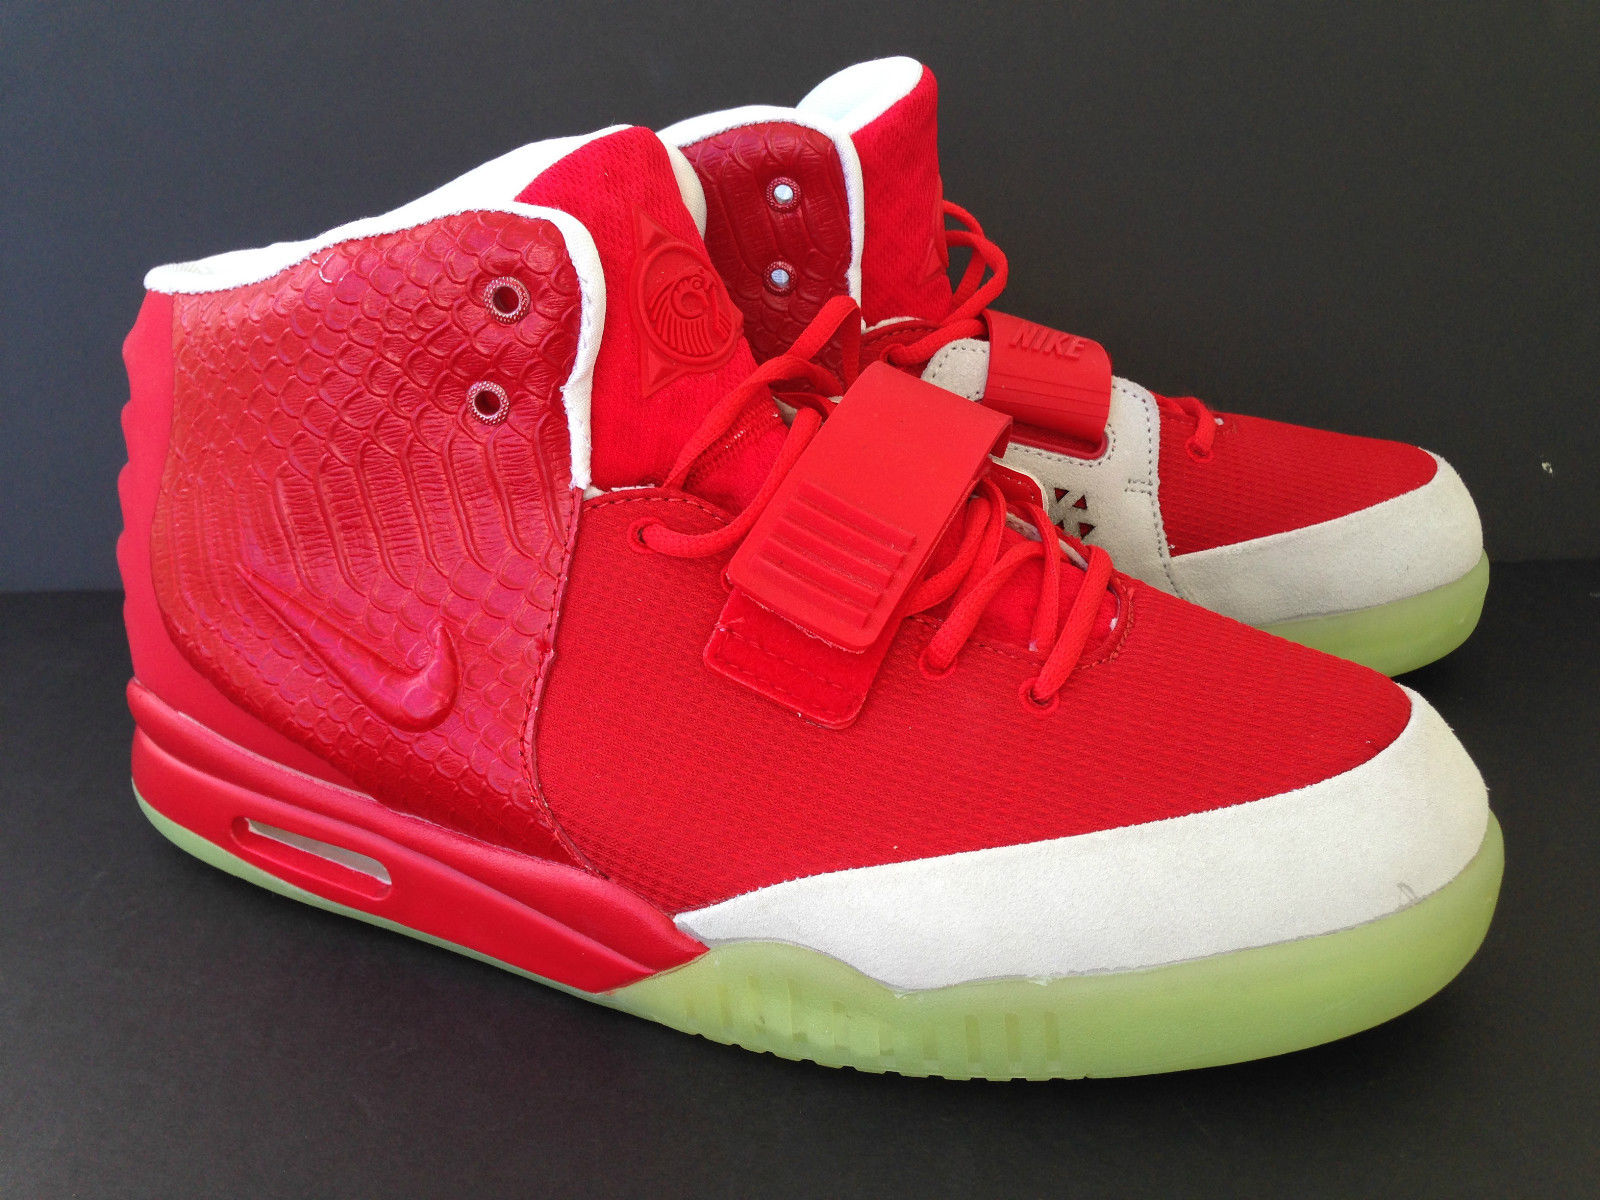 One Month Later - 10 Facts About the Red October Nike Air Yeezy 2